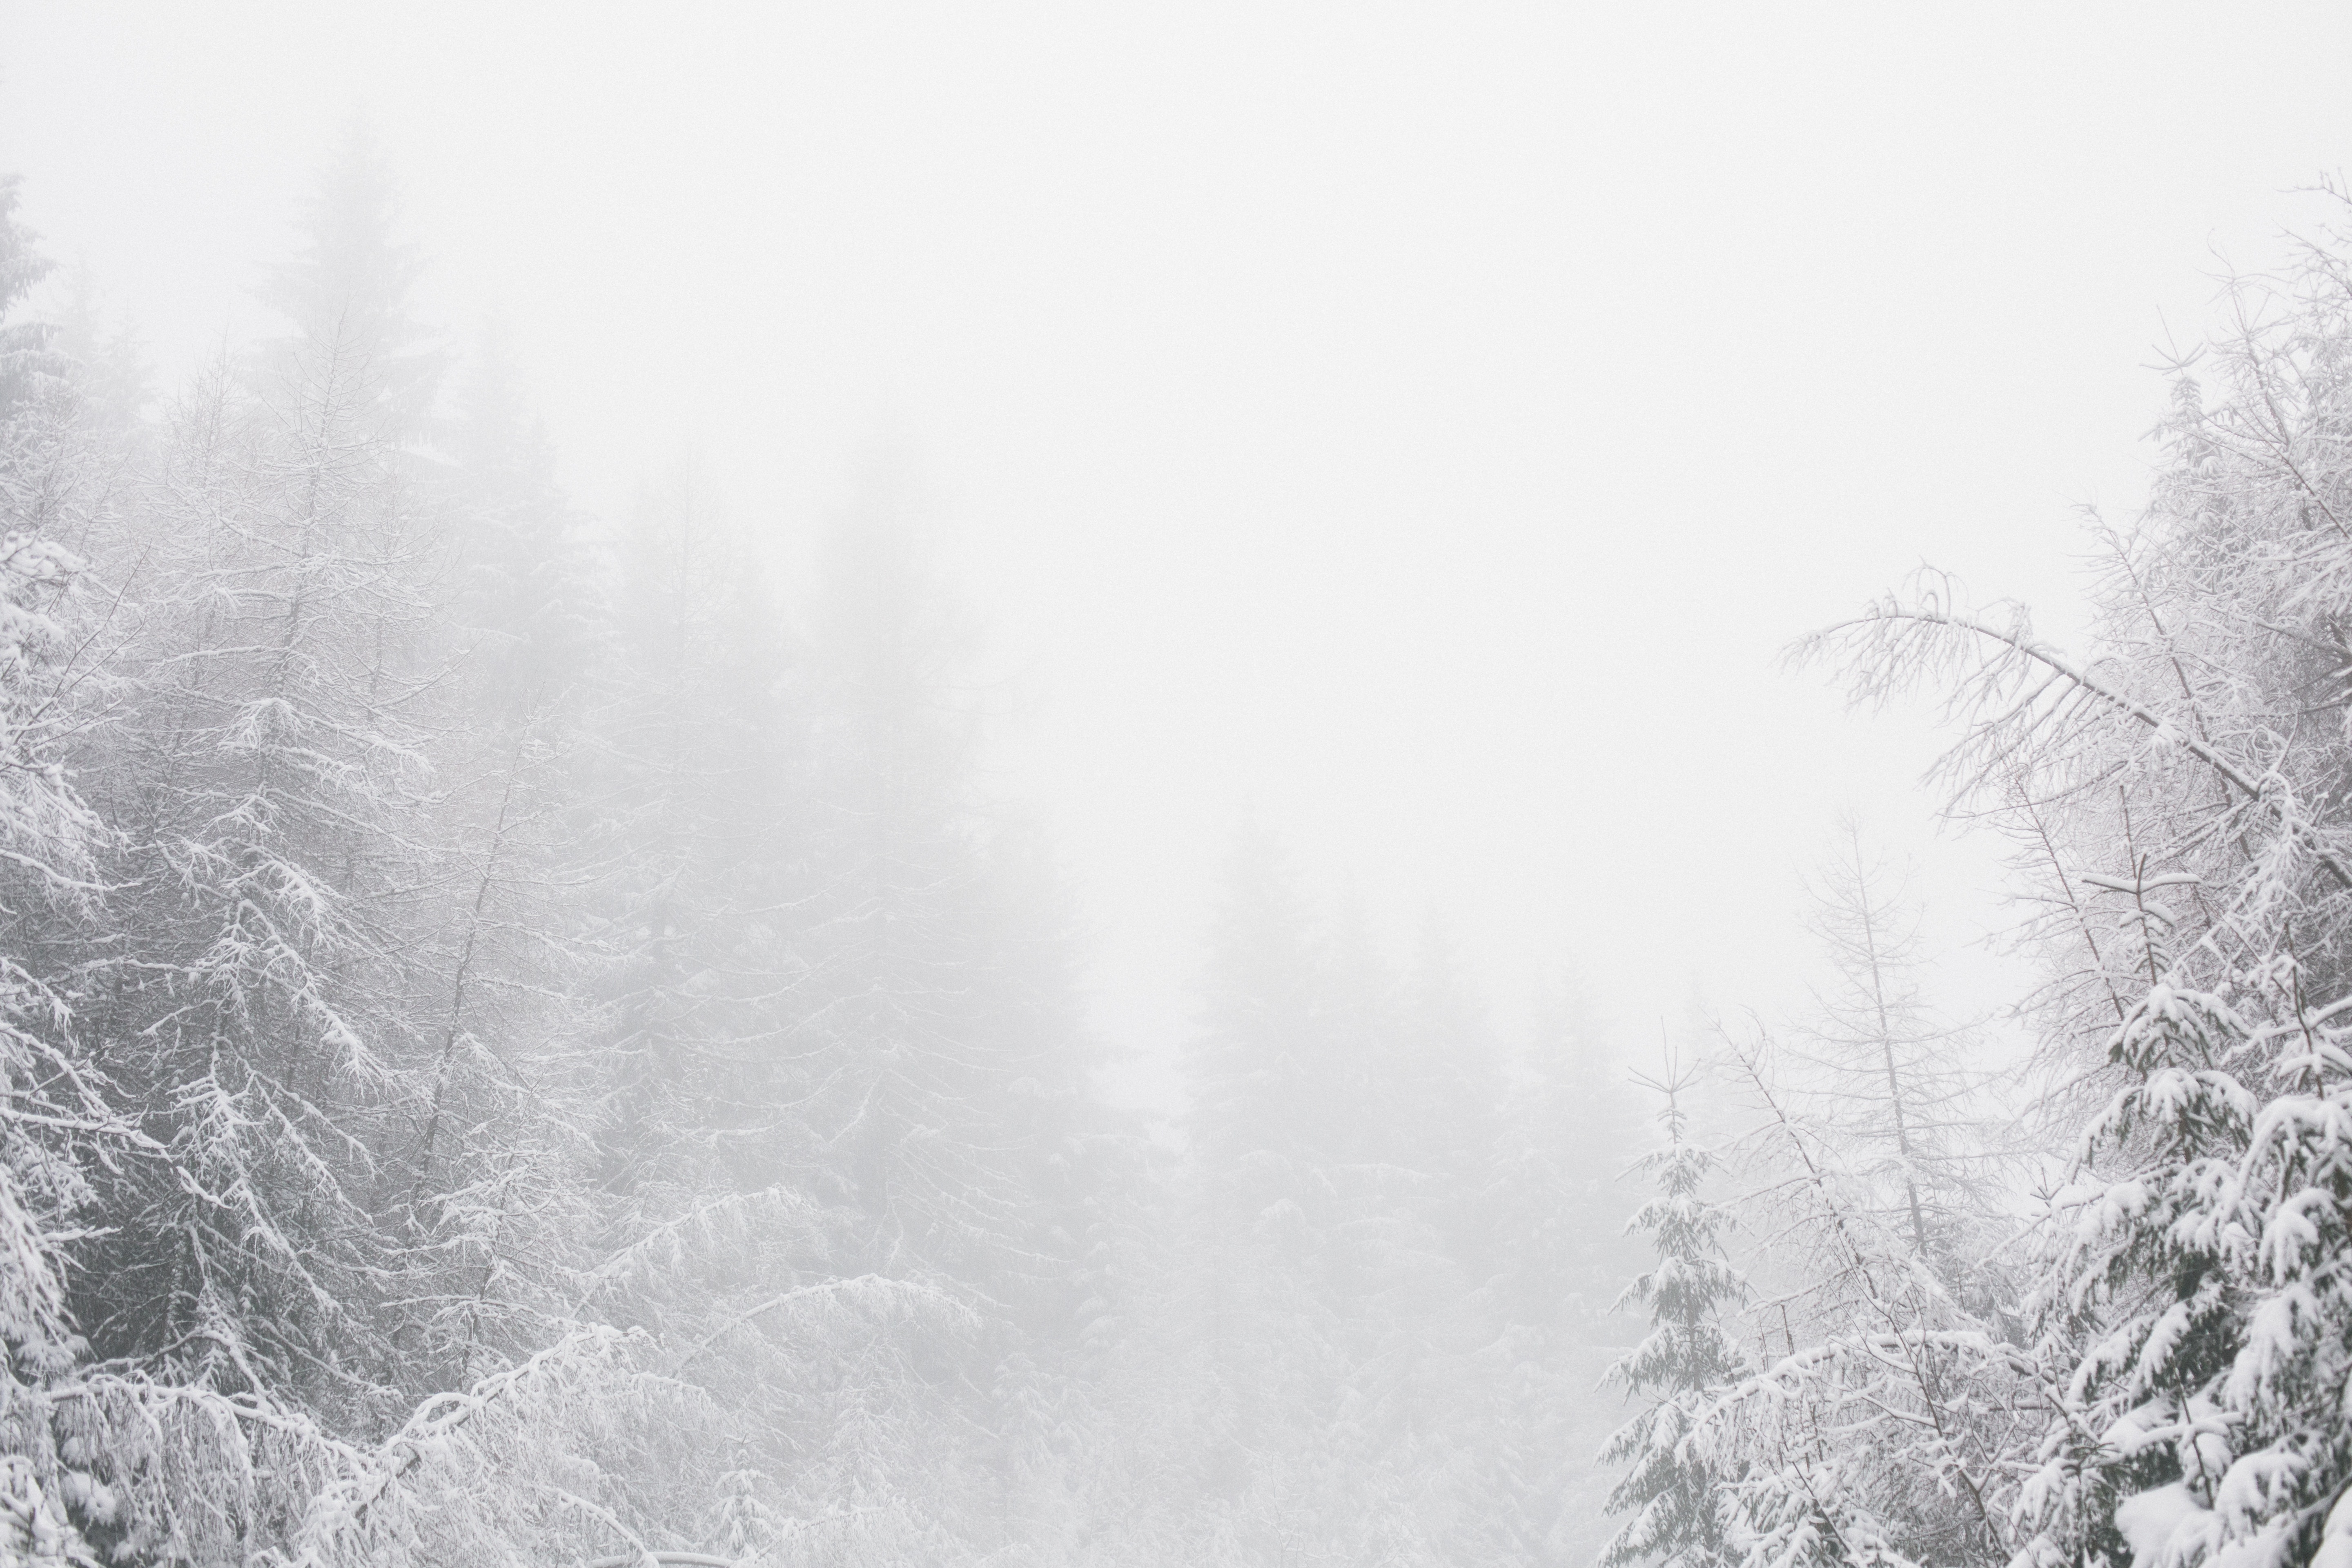 White snowy environment with pine trees photo